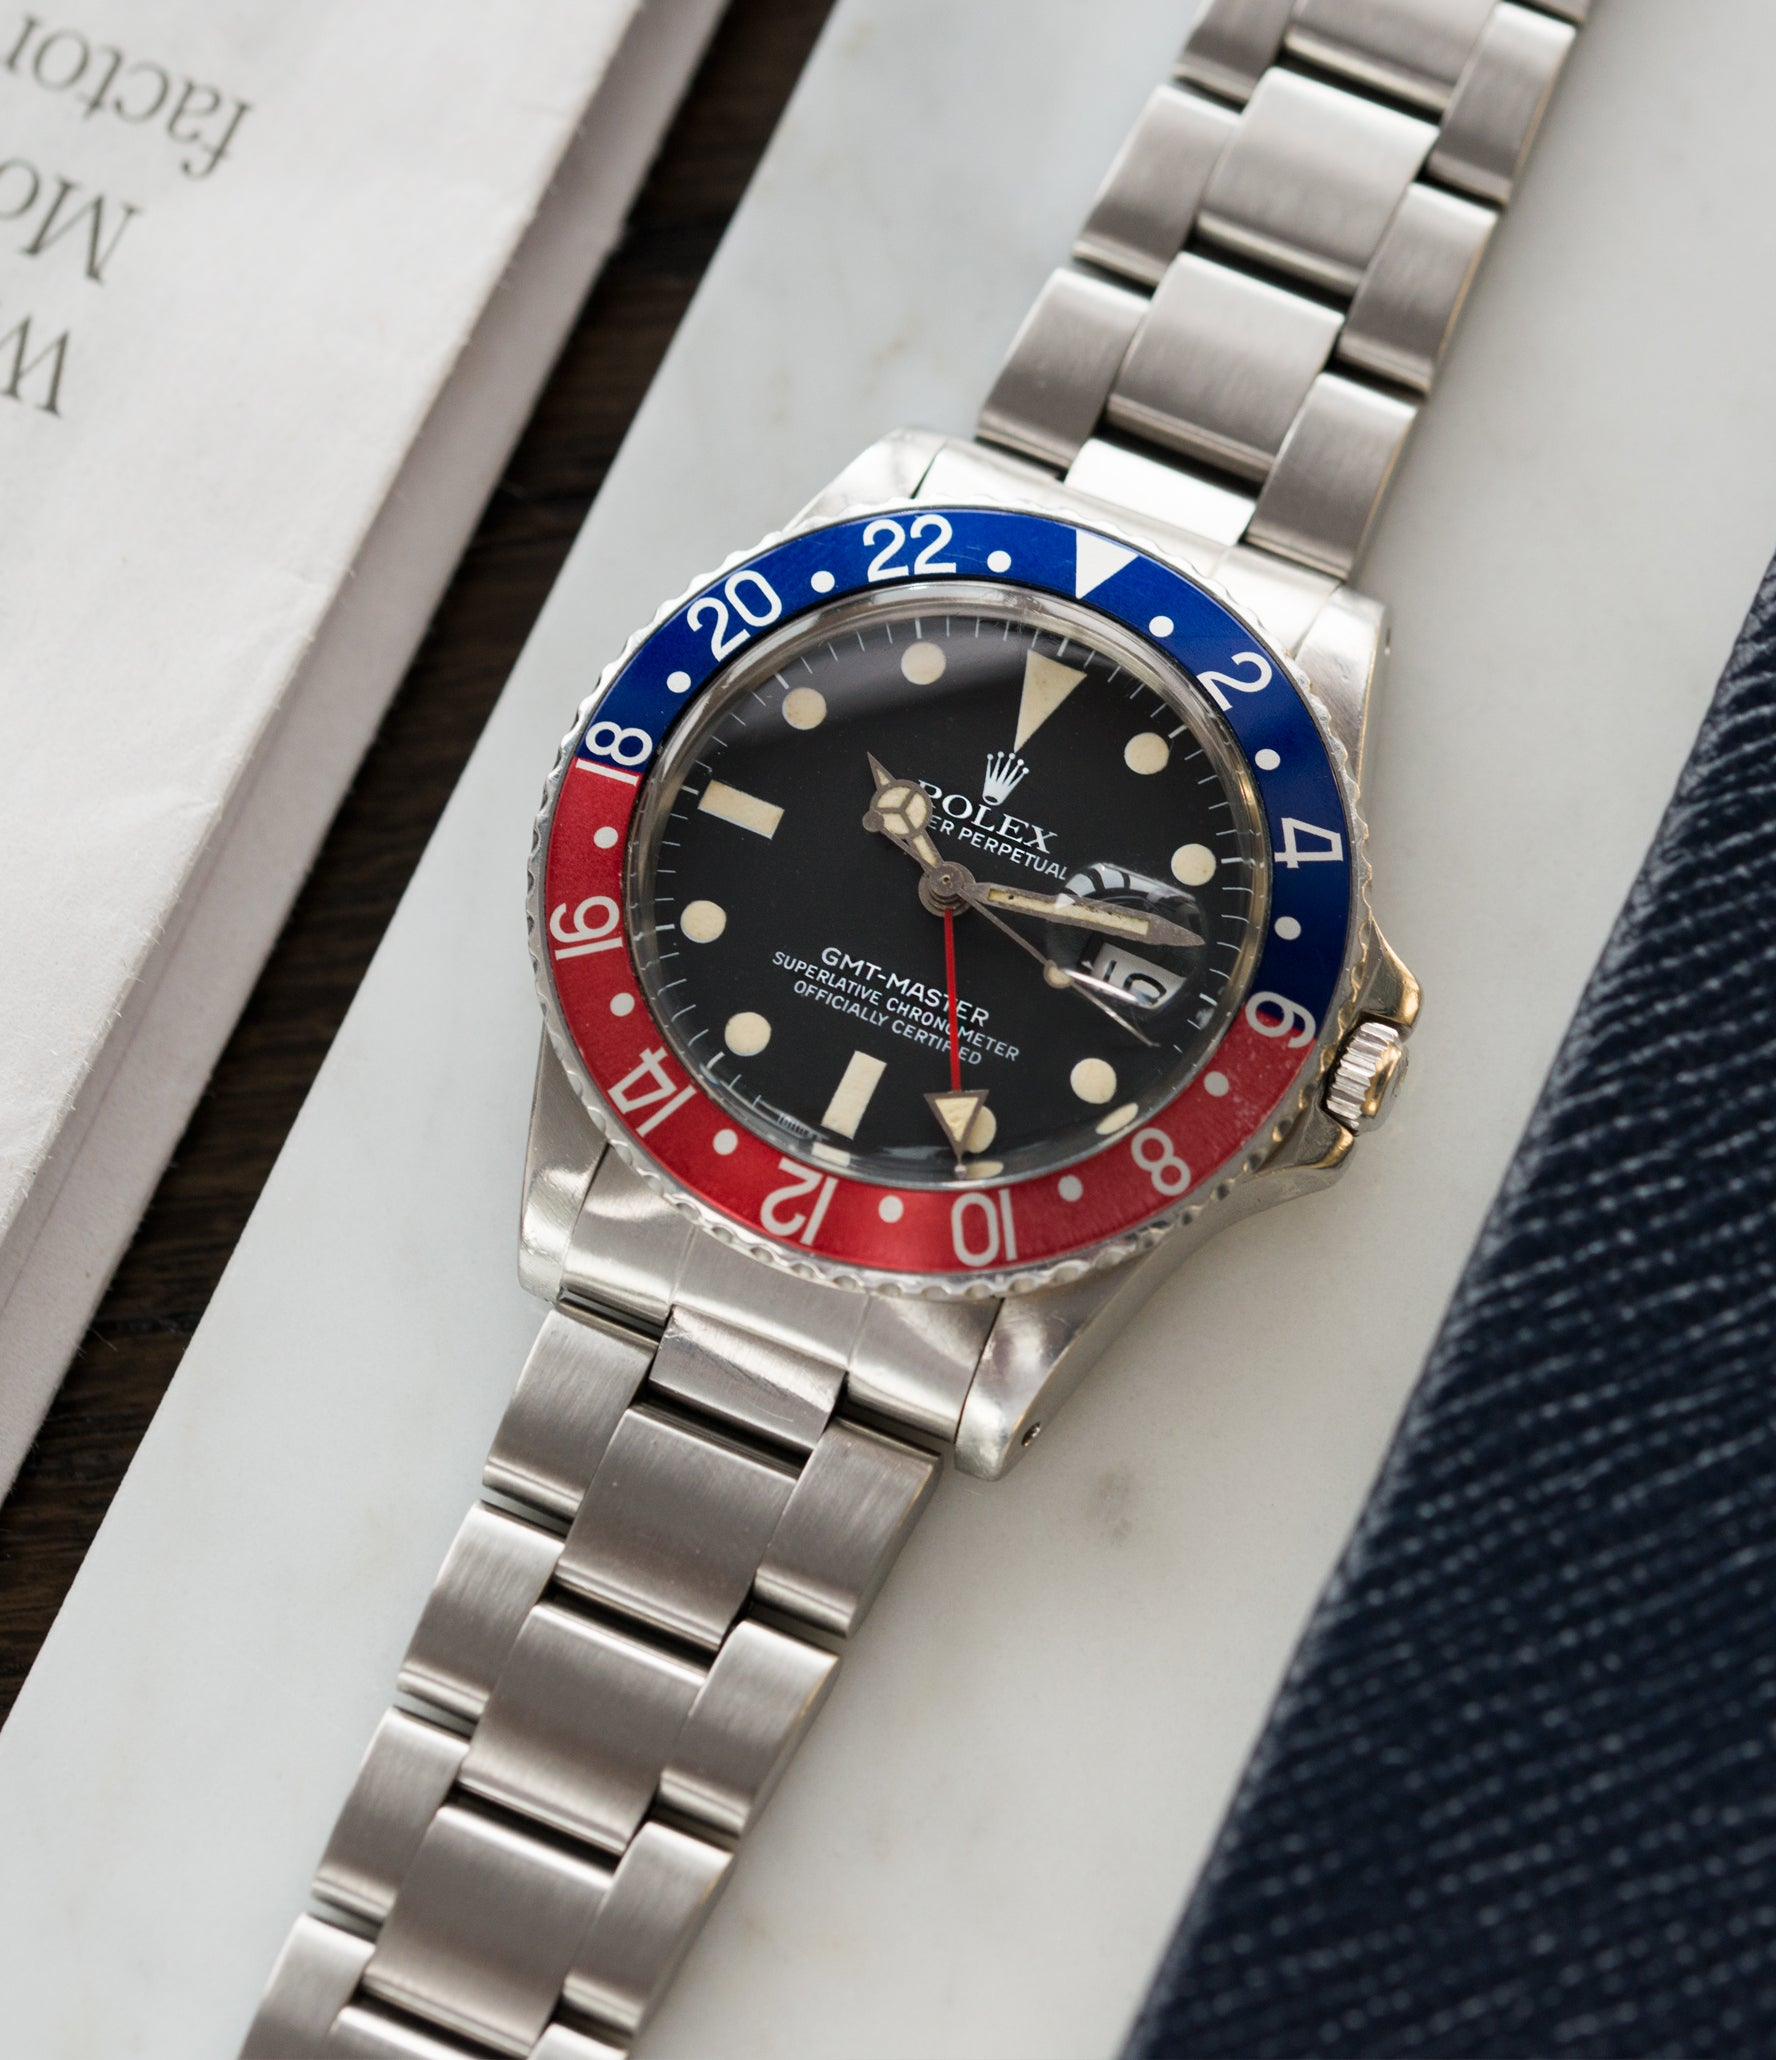 selling Rolex 16750 GMT-Master steel sport traveller watch for sale online at A Collected Man London vintage watch specialist